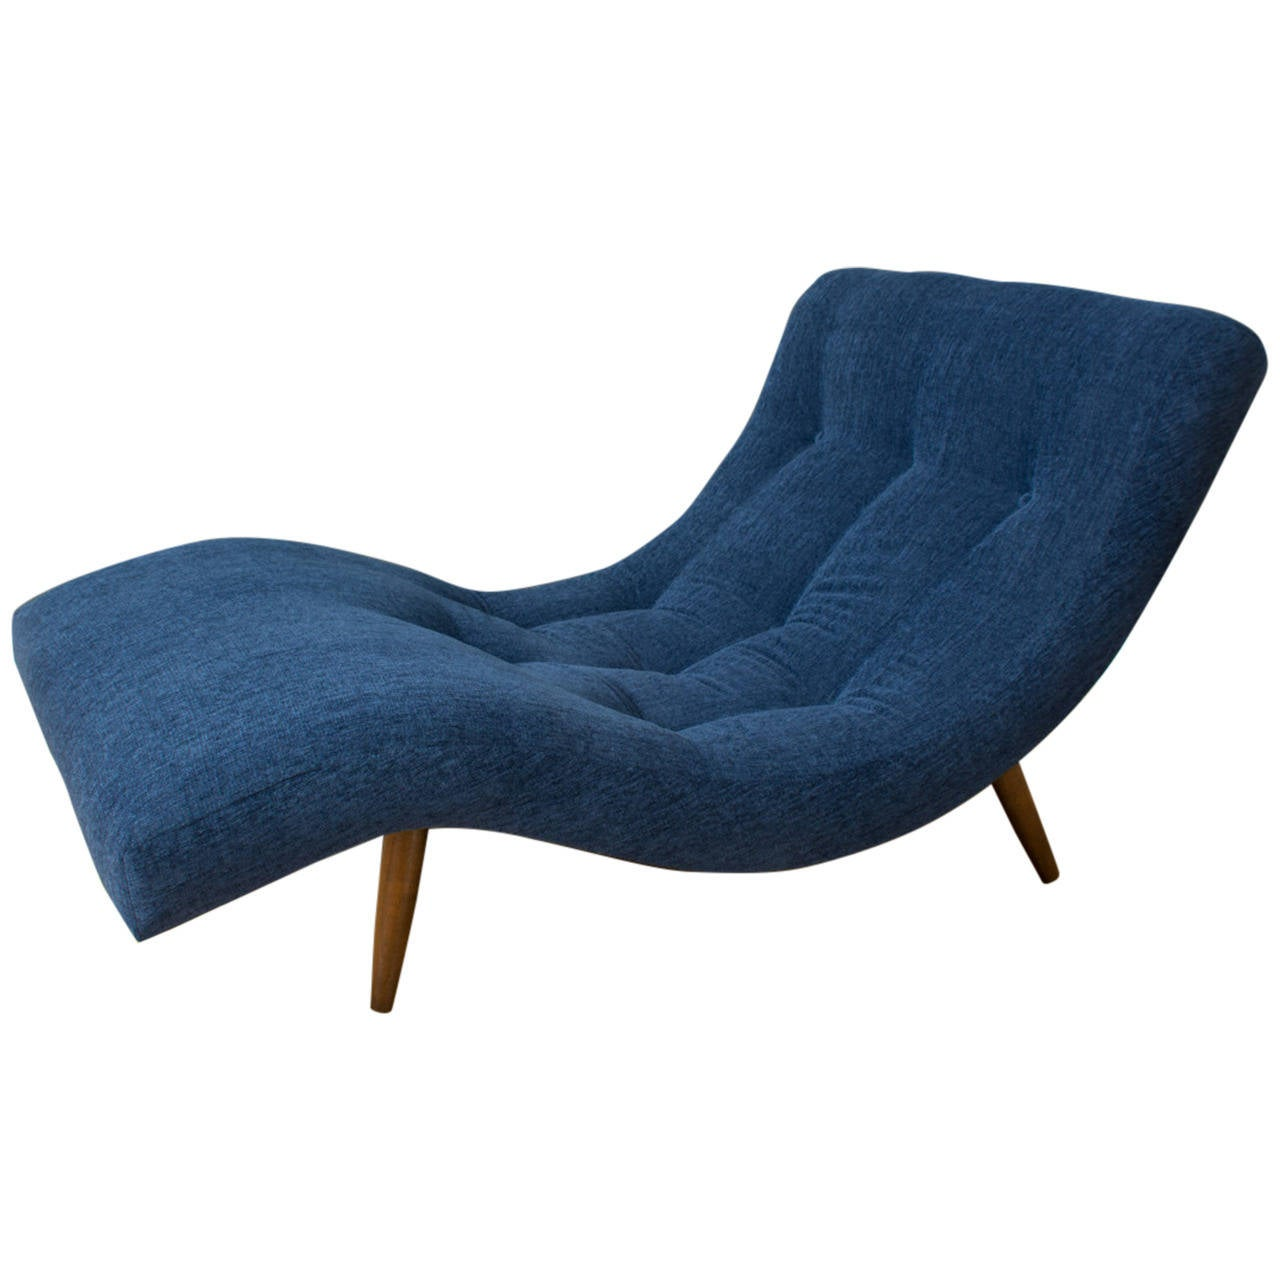 Vintage mid century chaise lounge chair by adrian pearsall for Antique chaise lounge